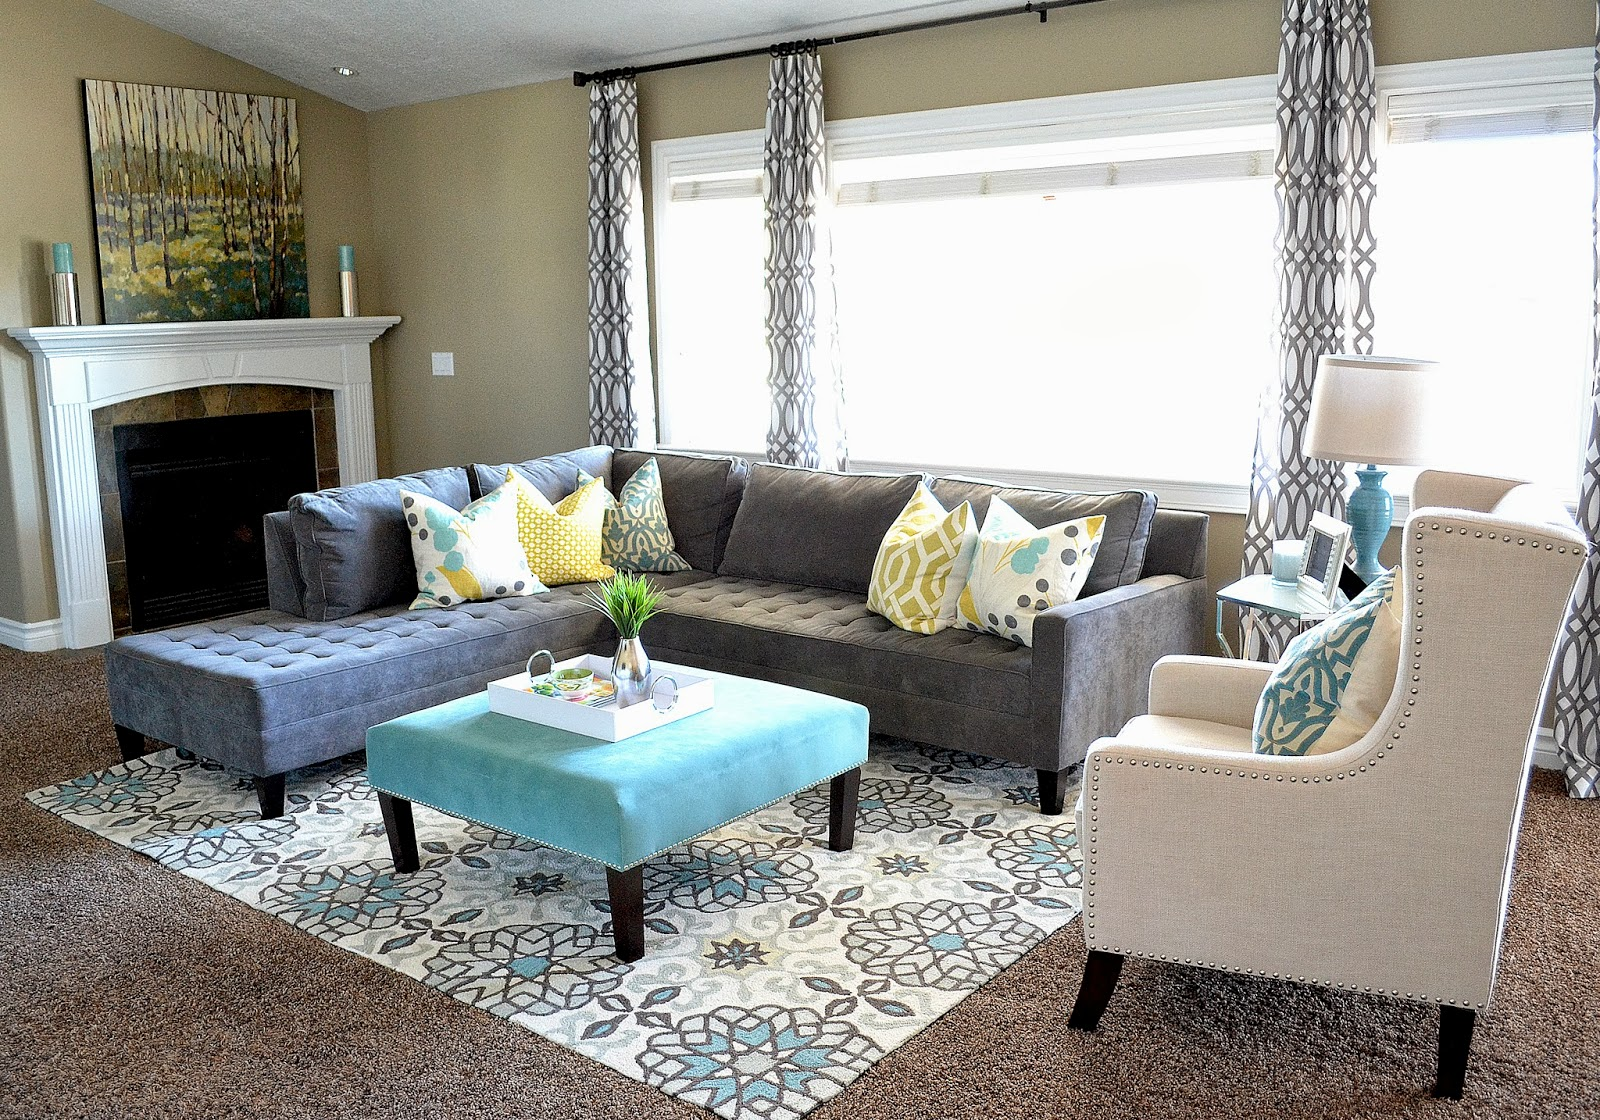 Local Client Project Reveal: Budget Friendly Family Room - Sita ...